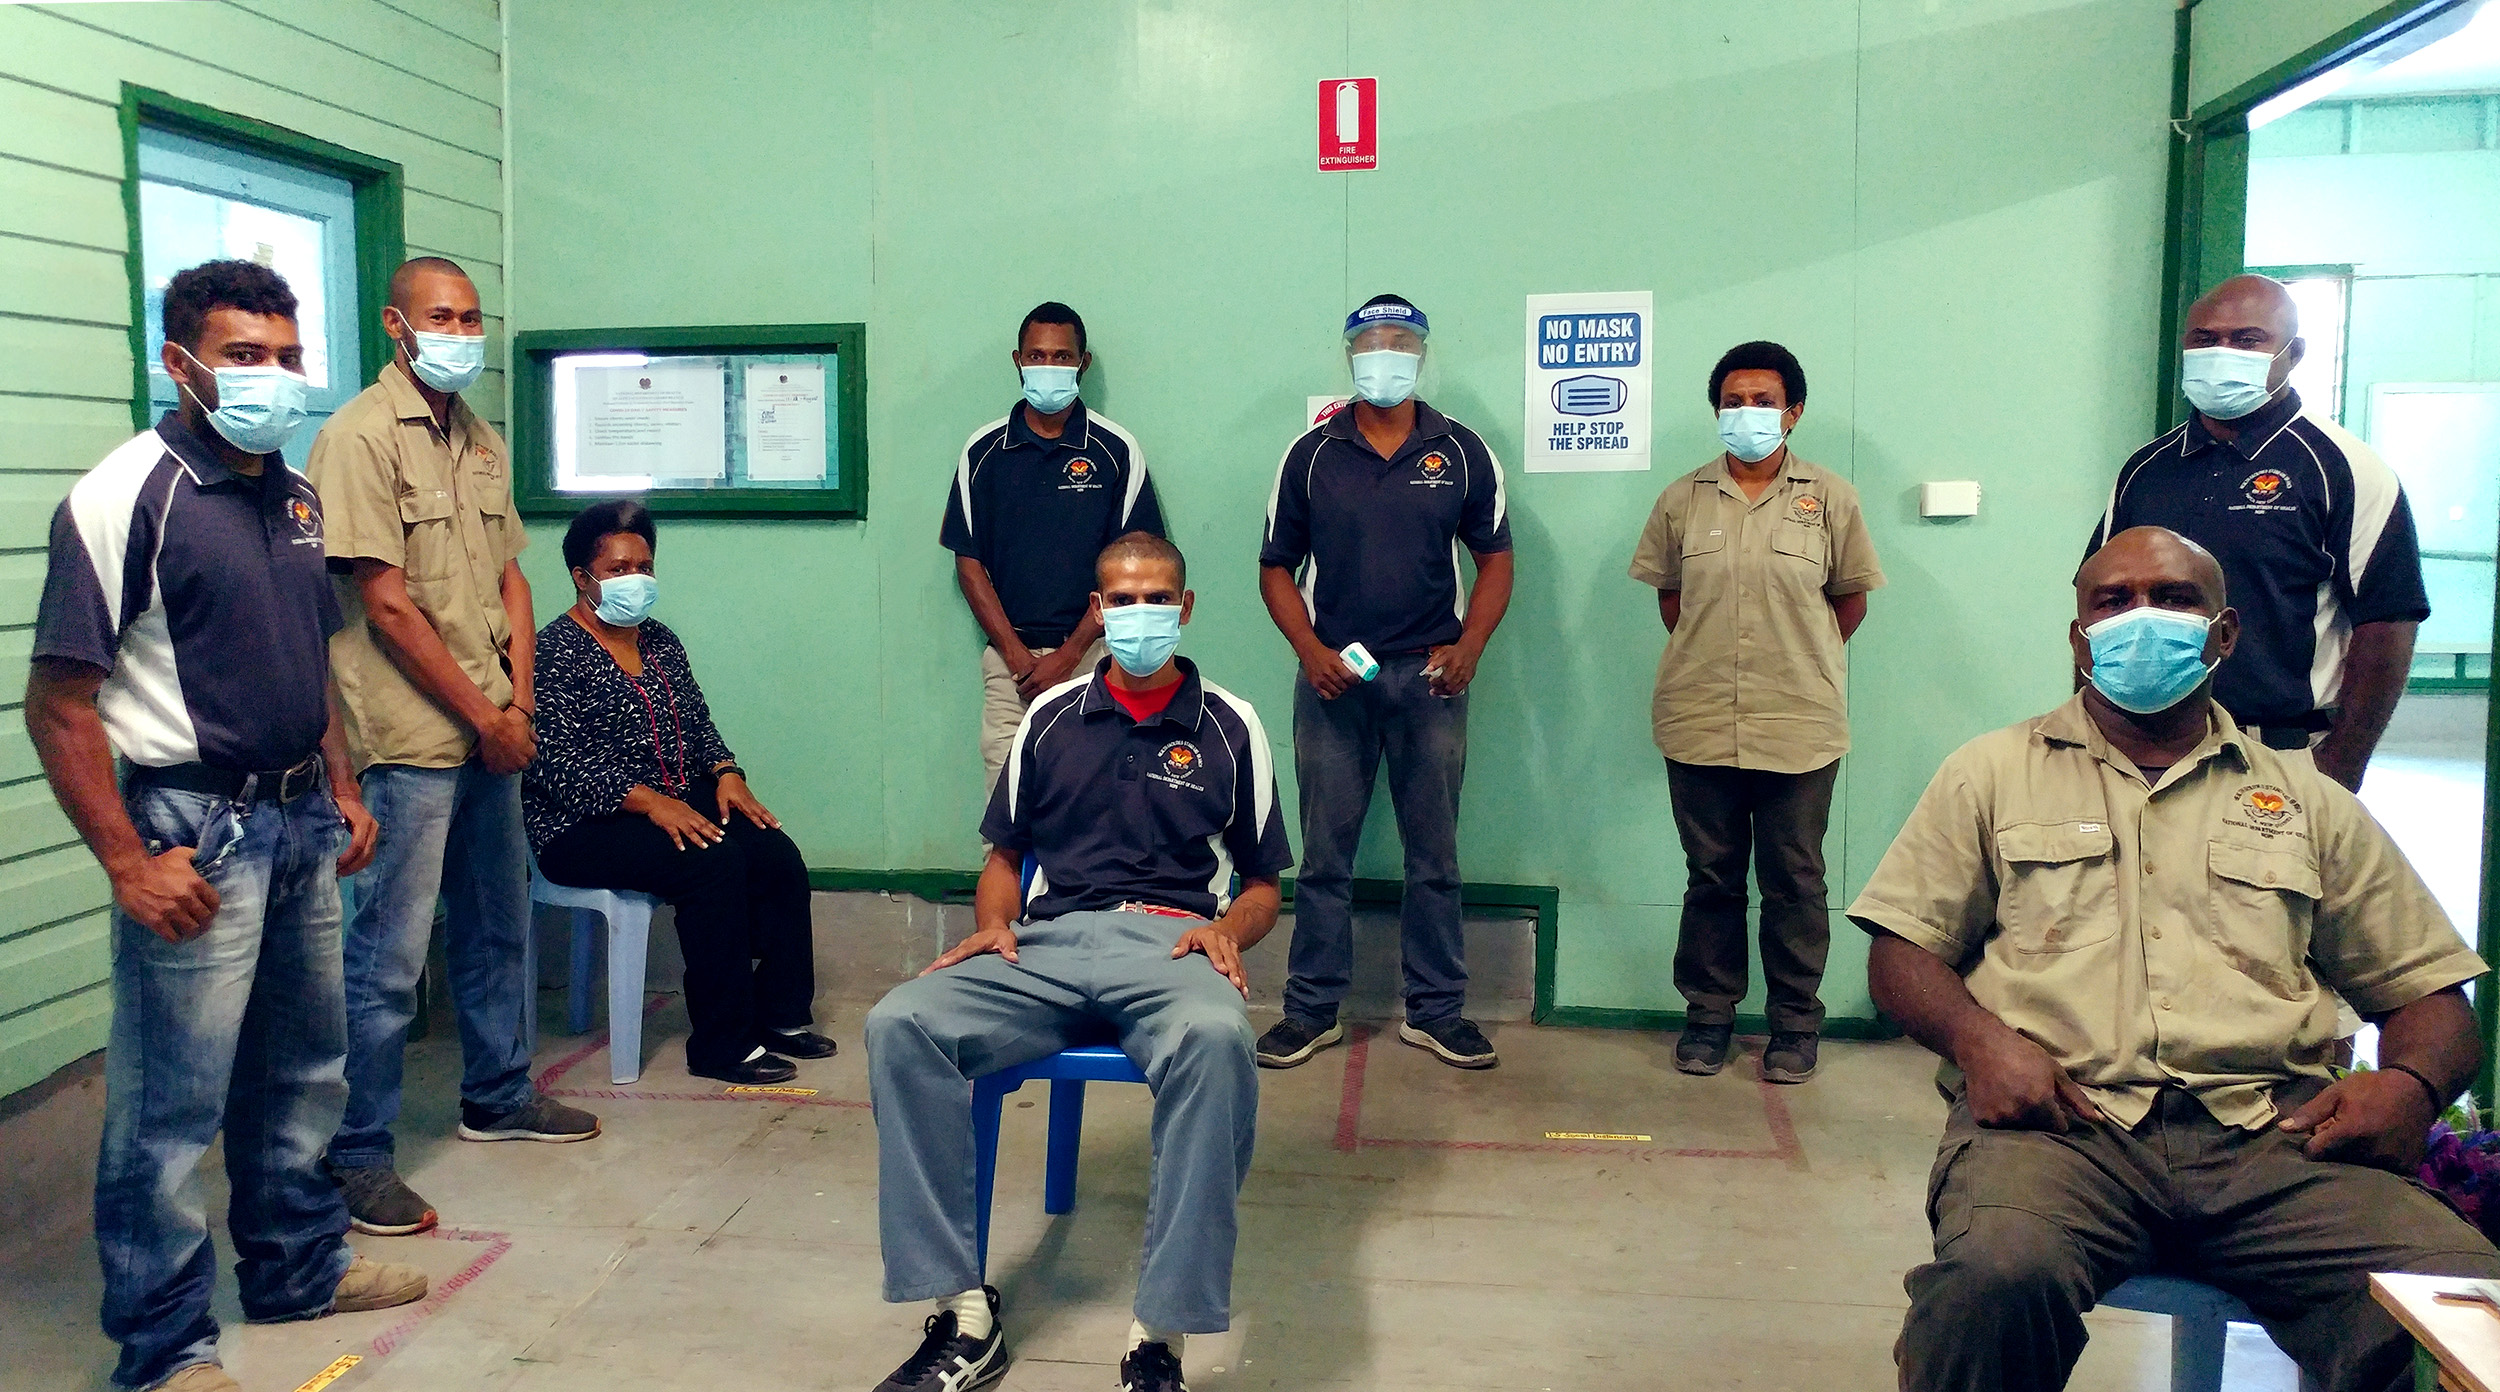 NOPS officers at Port Moresby clinic waiting room, displaying their face masks and social distancing.